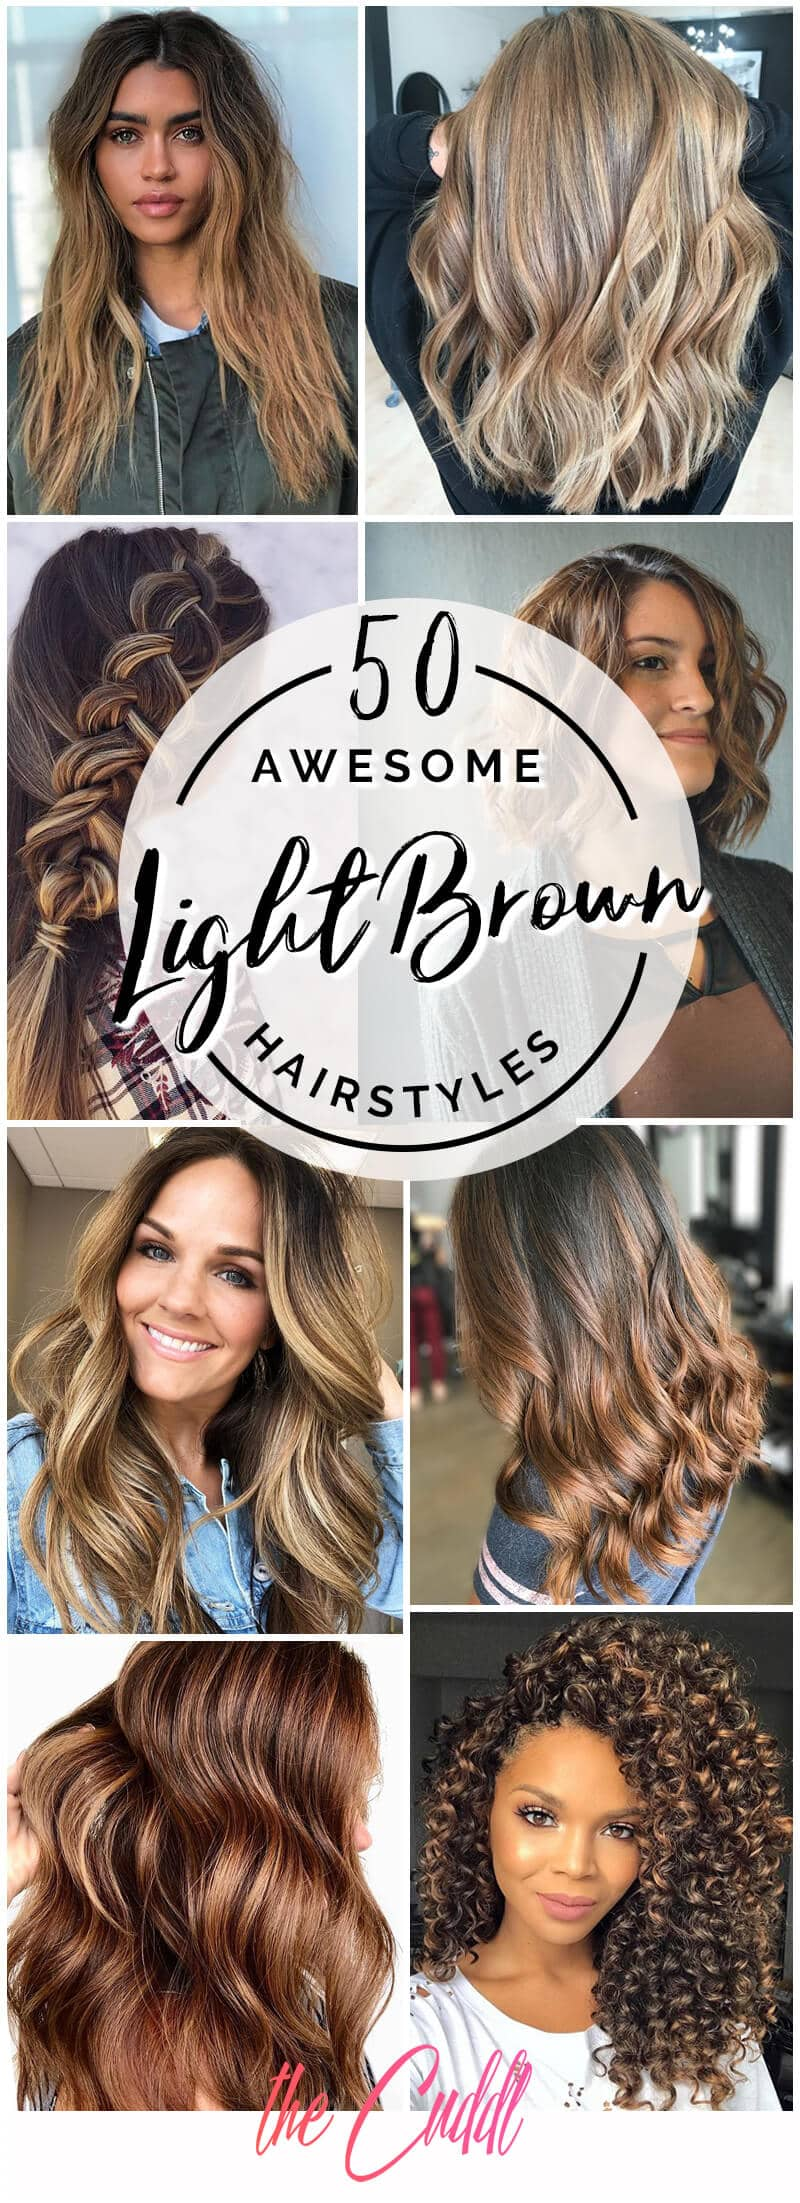 50 Gorgeous Light Brown Hairstyle Ideas To Rock A Hot New Look In 2019